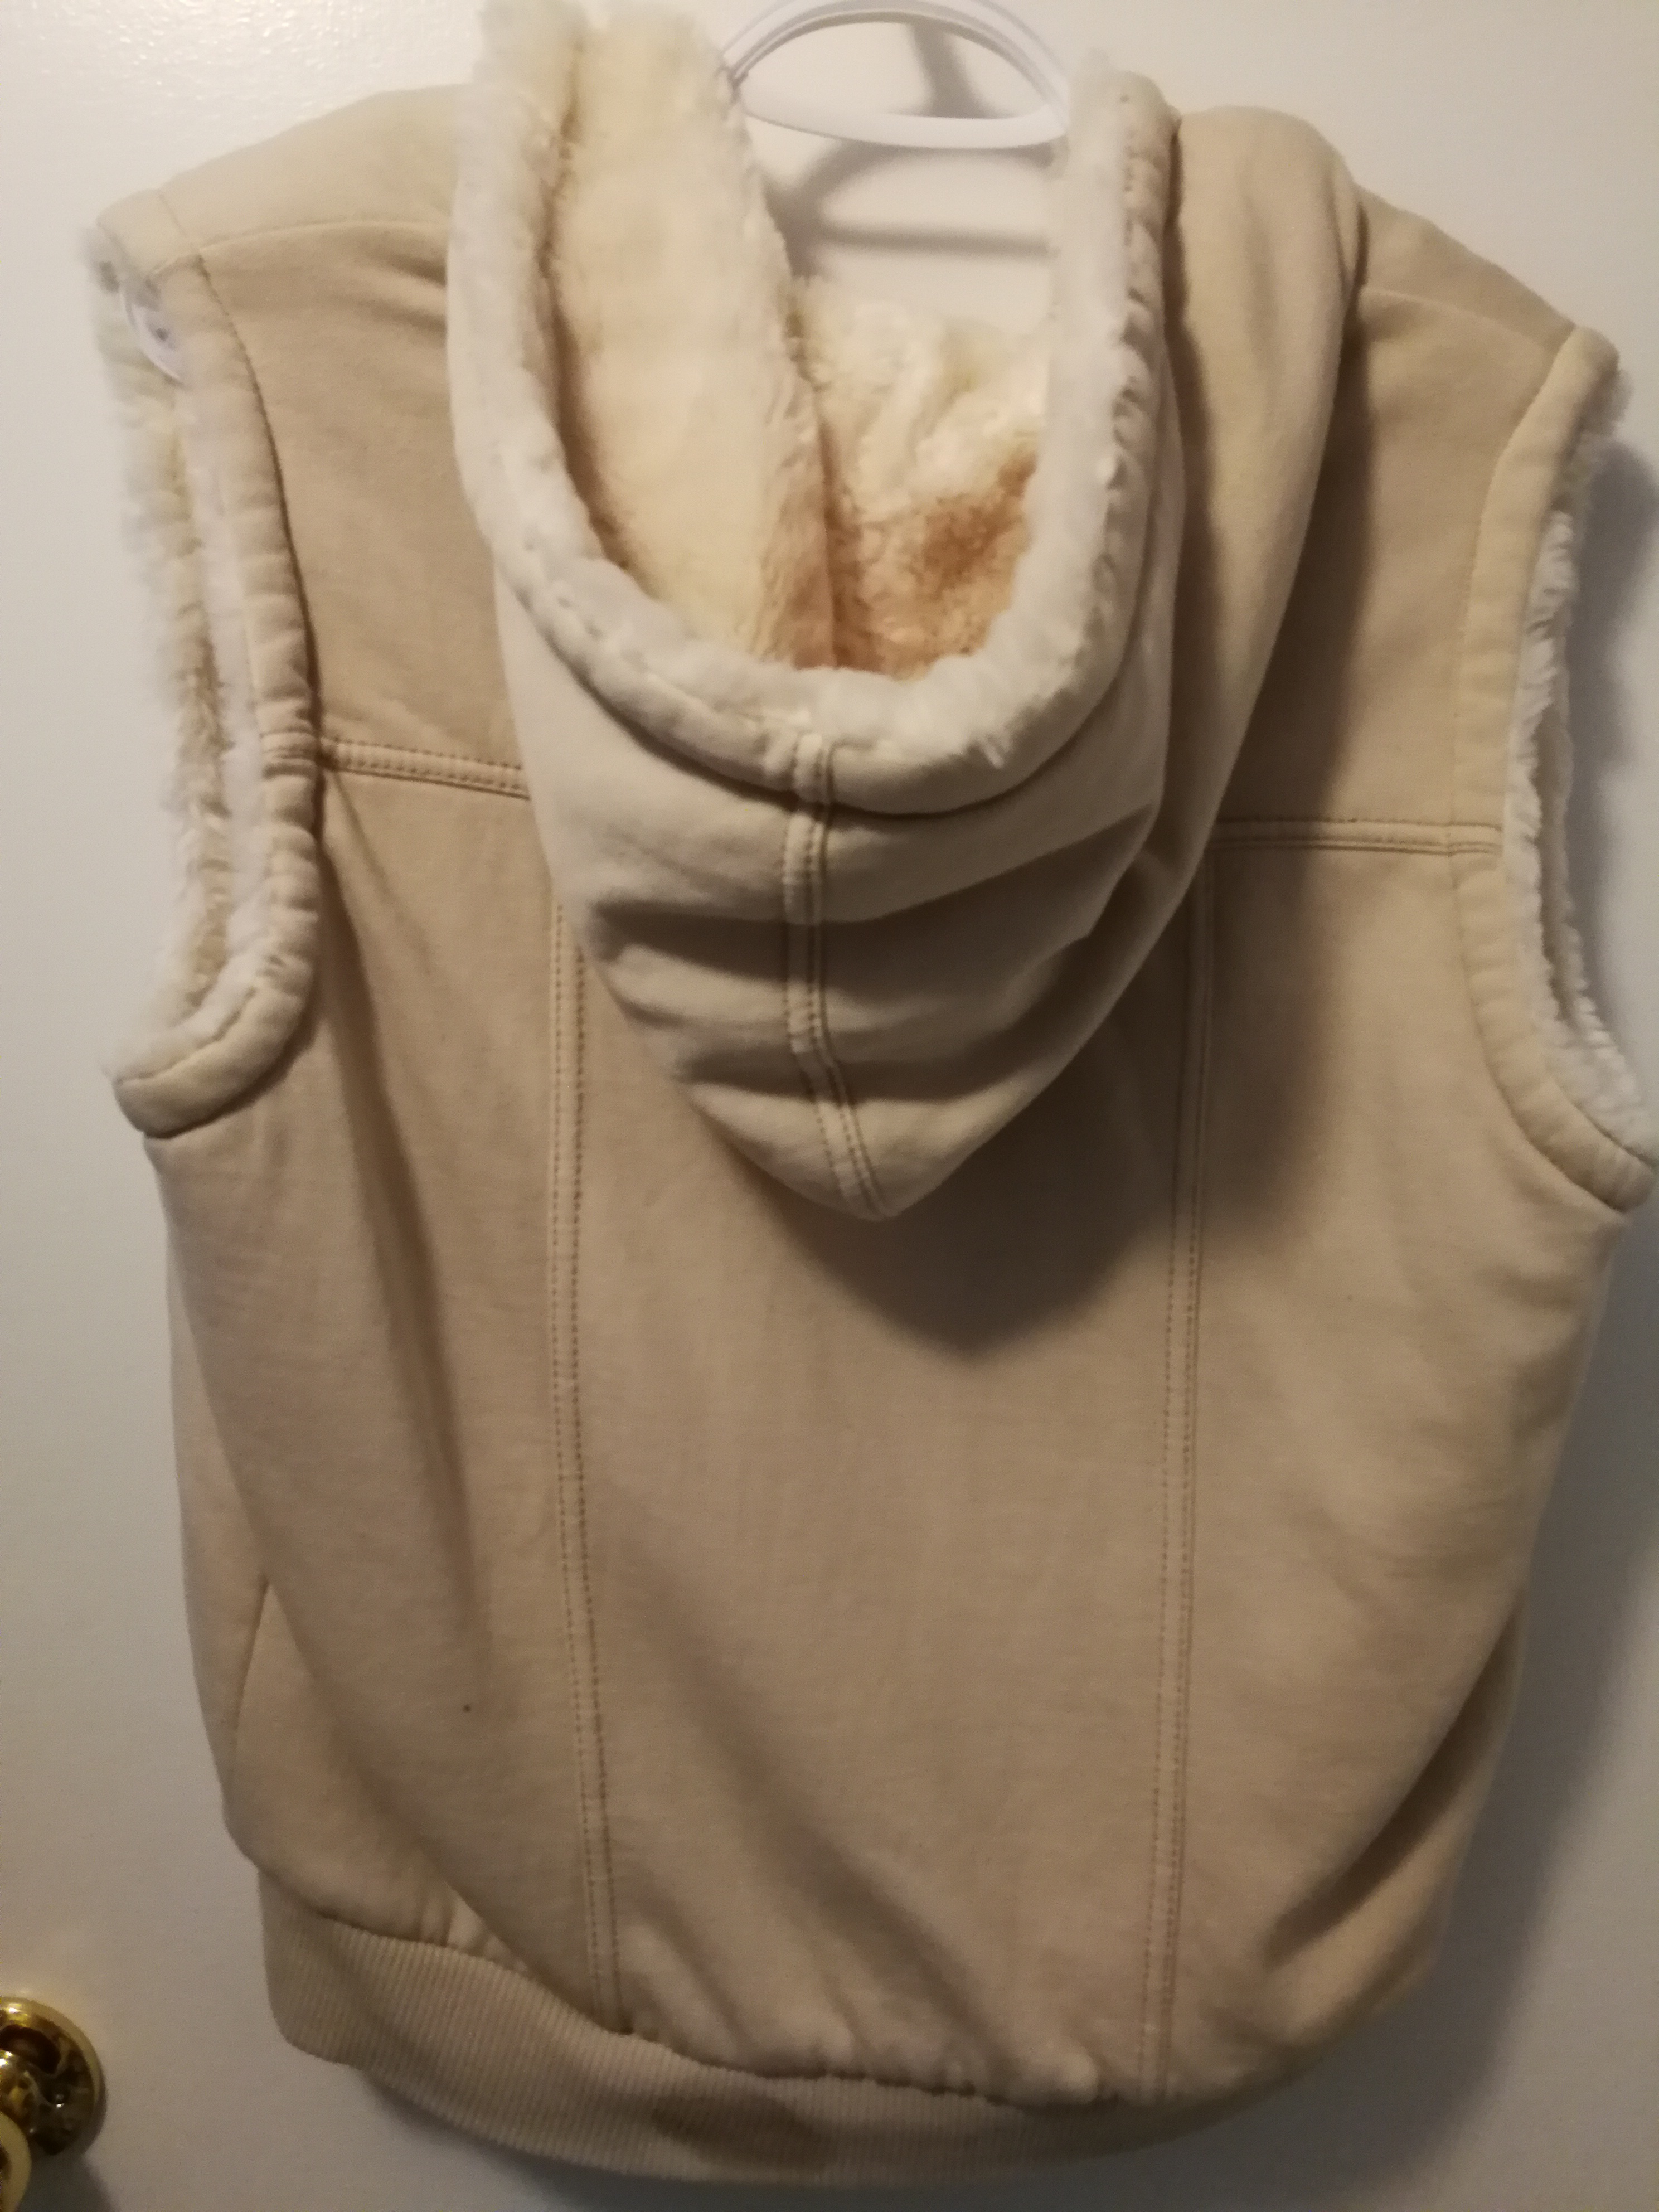 Women's Gap vest small